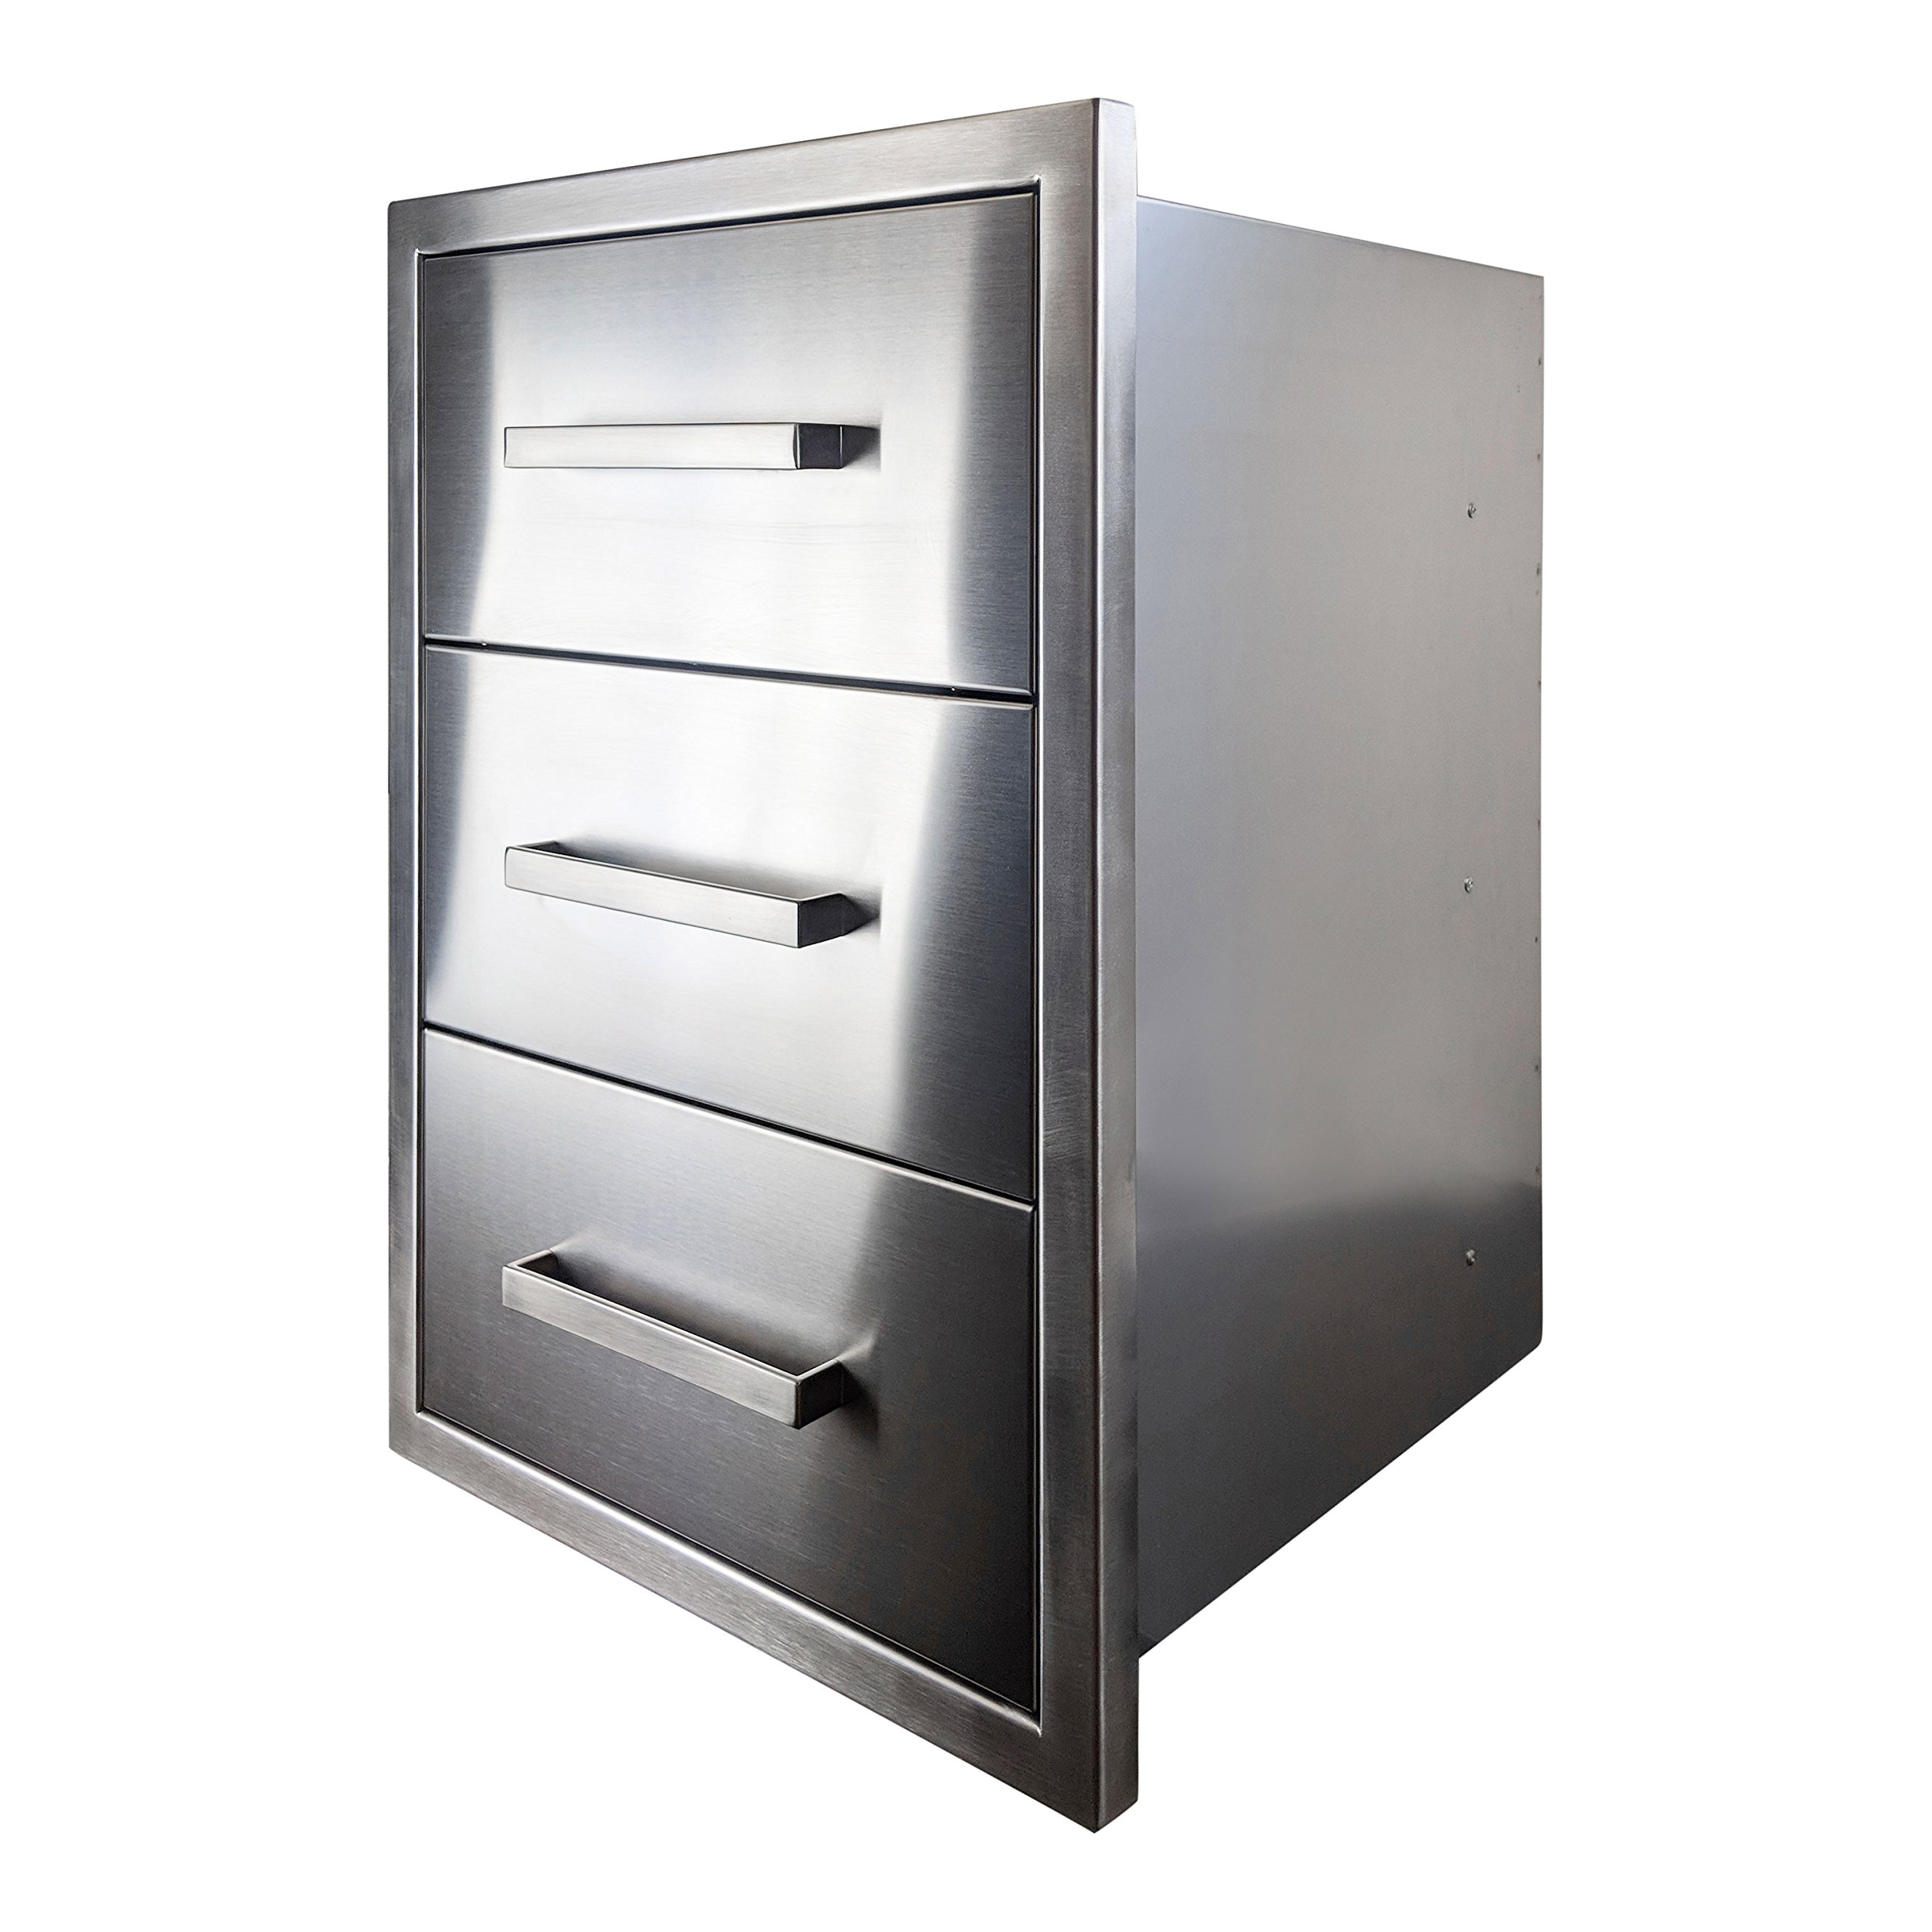 Katzington BBQ ISLAND DRAWERS - Modern Style - 26'' Triple Drawers - 304 Grade Stainless Steel - Double Walled Construction - Barbecue Island/Outdoor Kitchen Access Door - Soft Close Drawer Glides